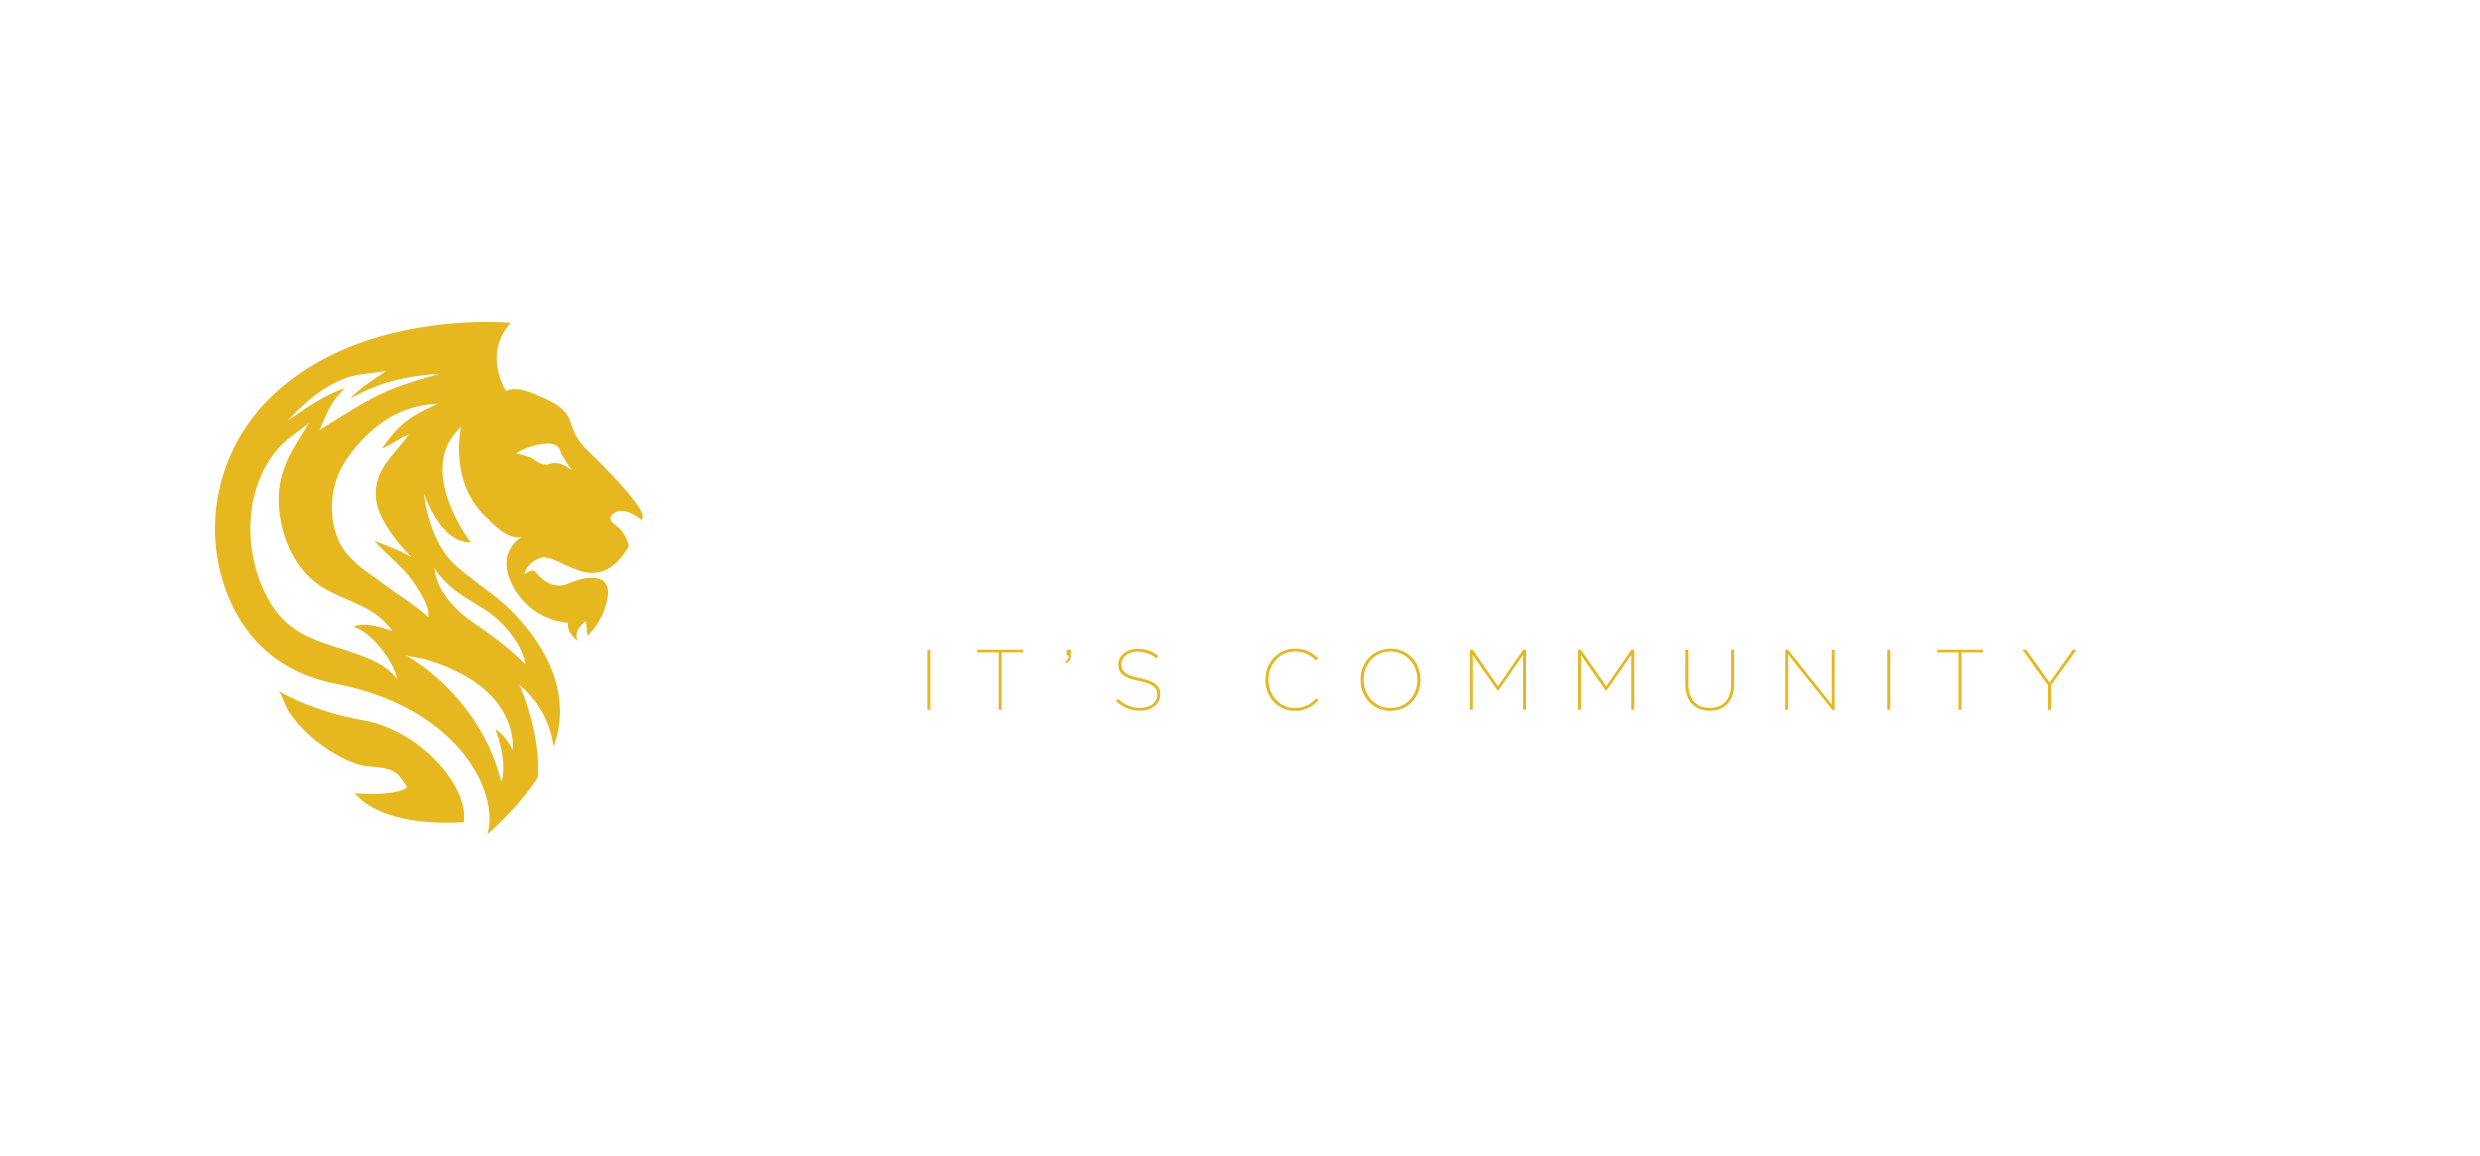 Kingdom Homes